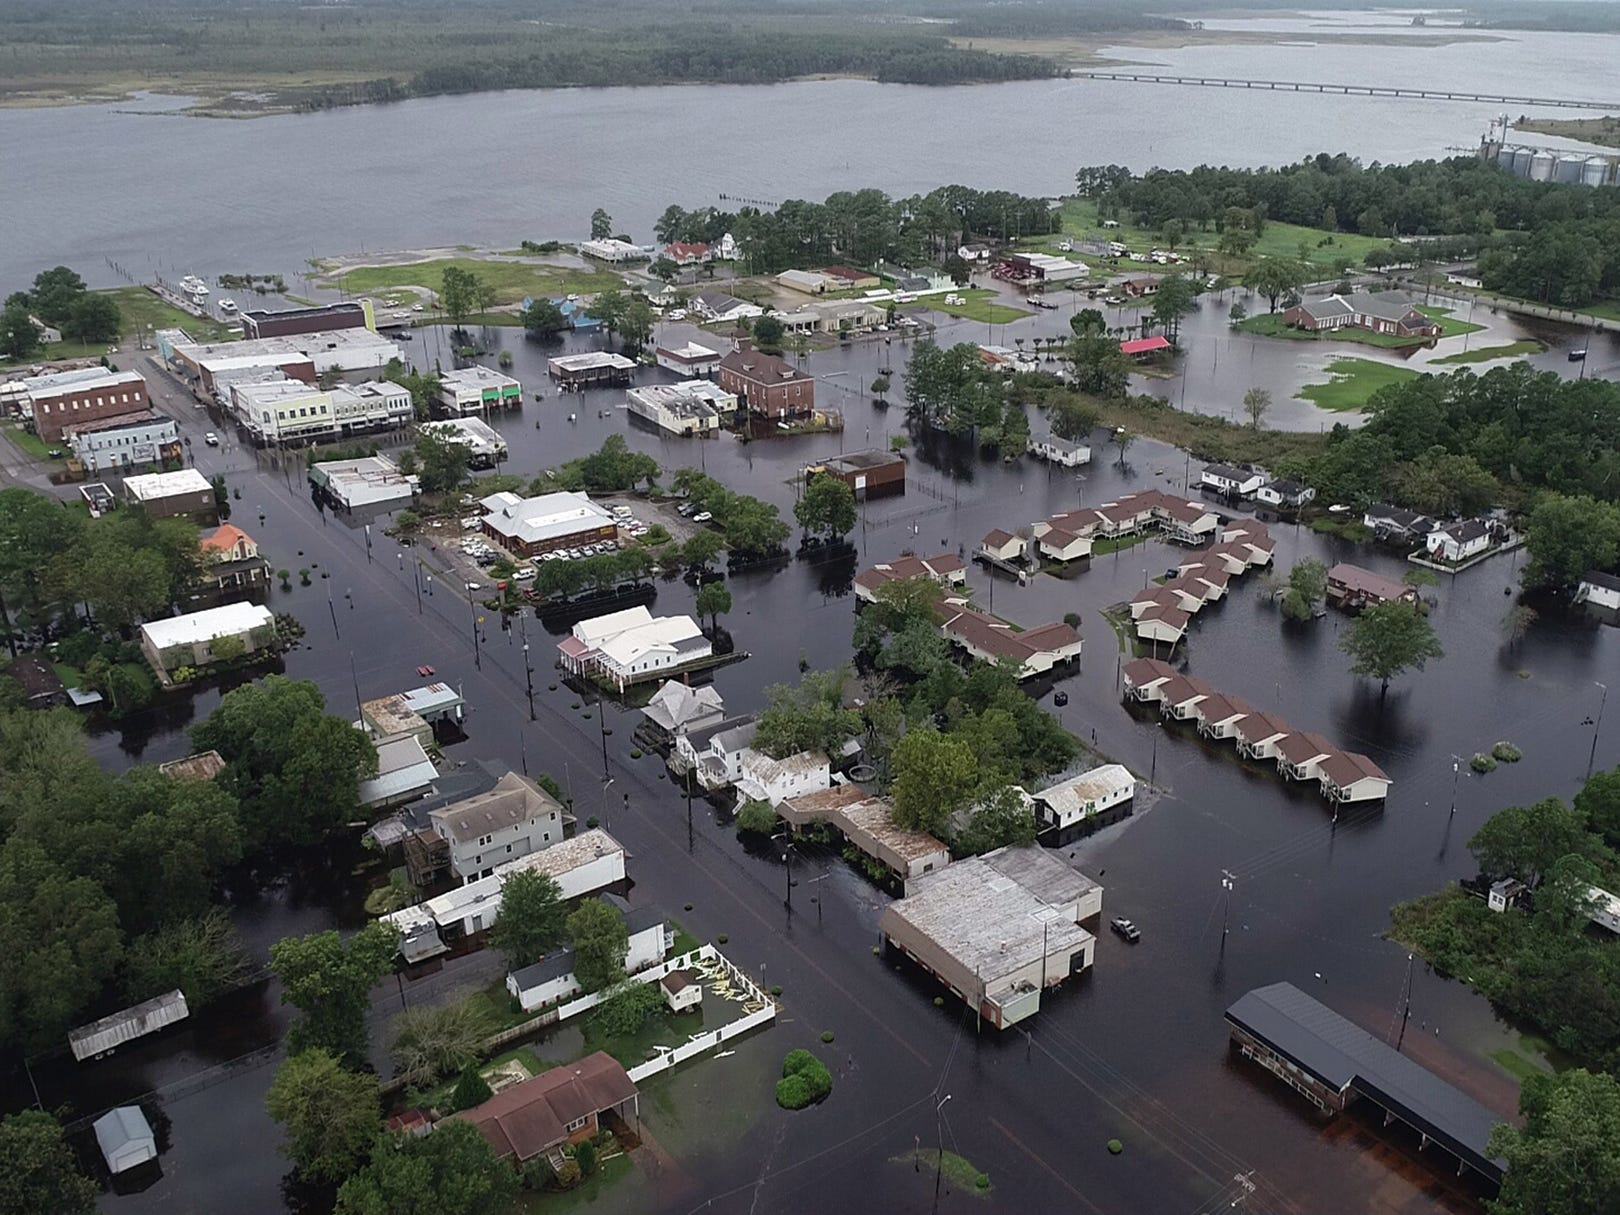 A drone photo of flooding caused by Hurricane Florence in Belhaven, N.C. on Sept. 15, 2018.